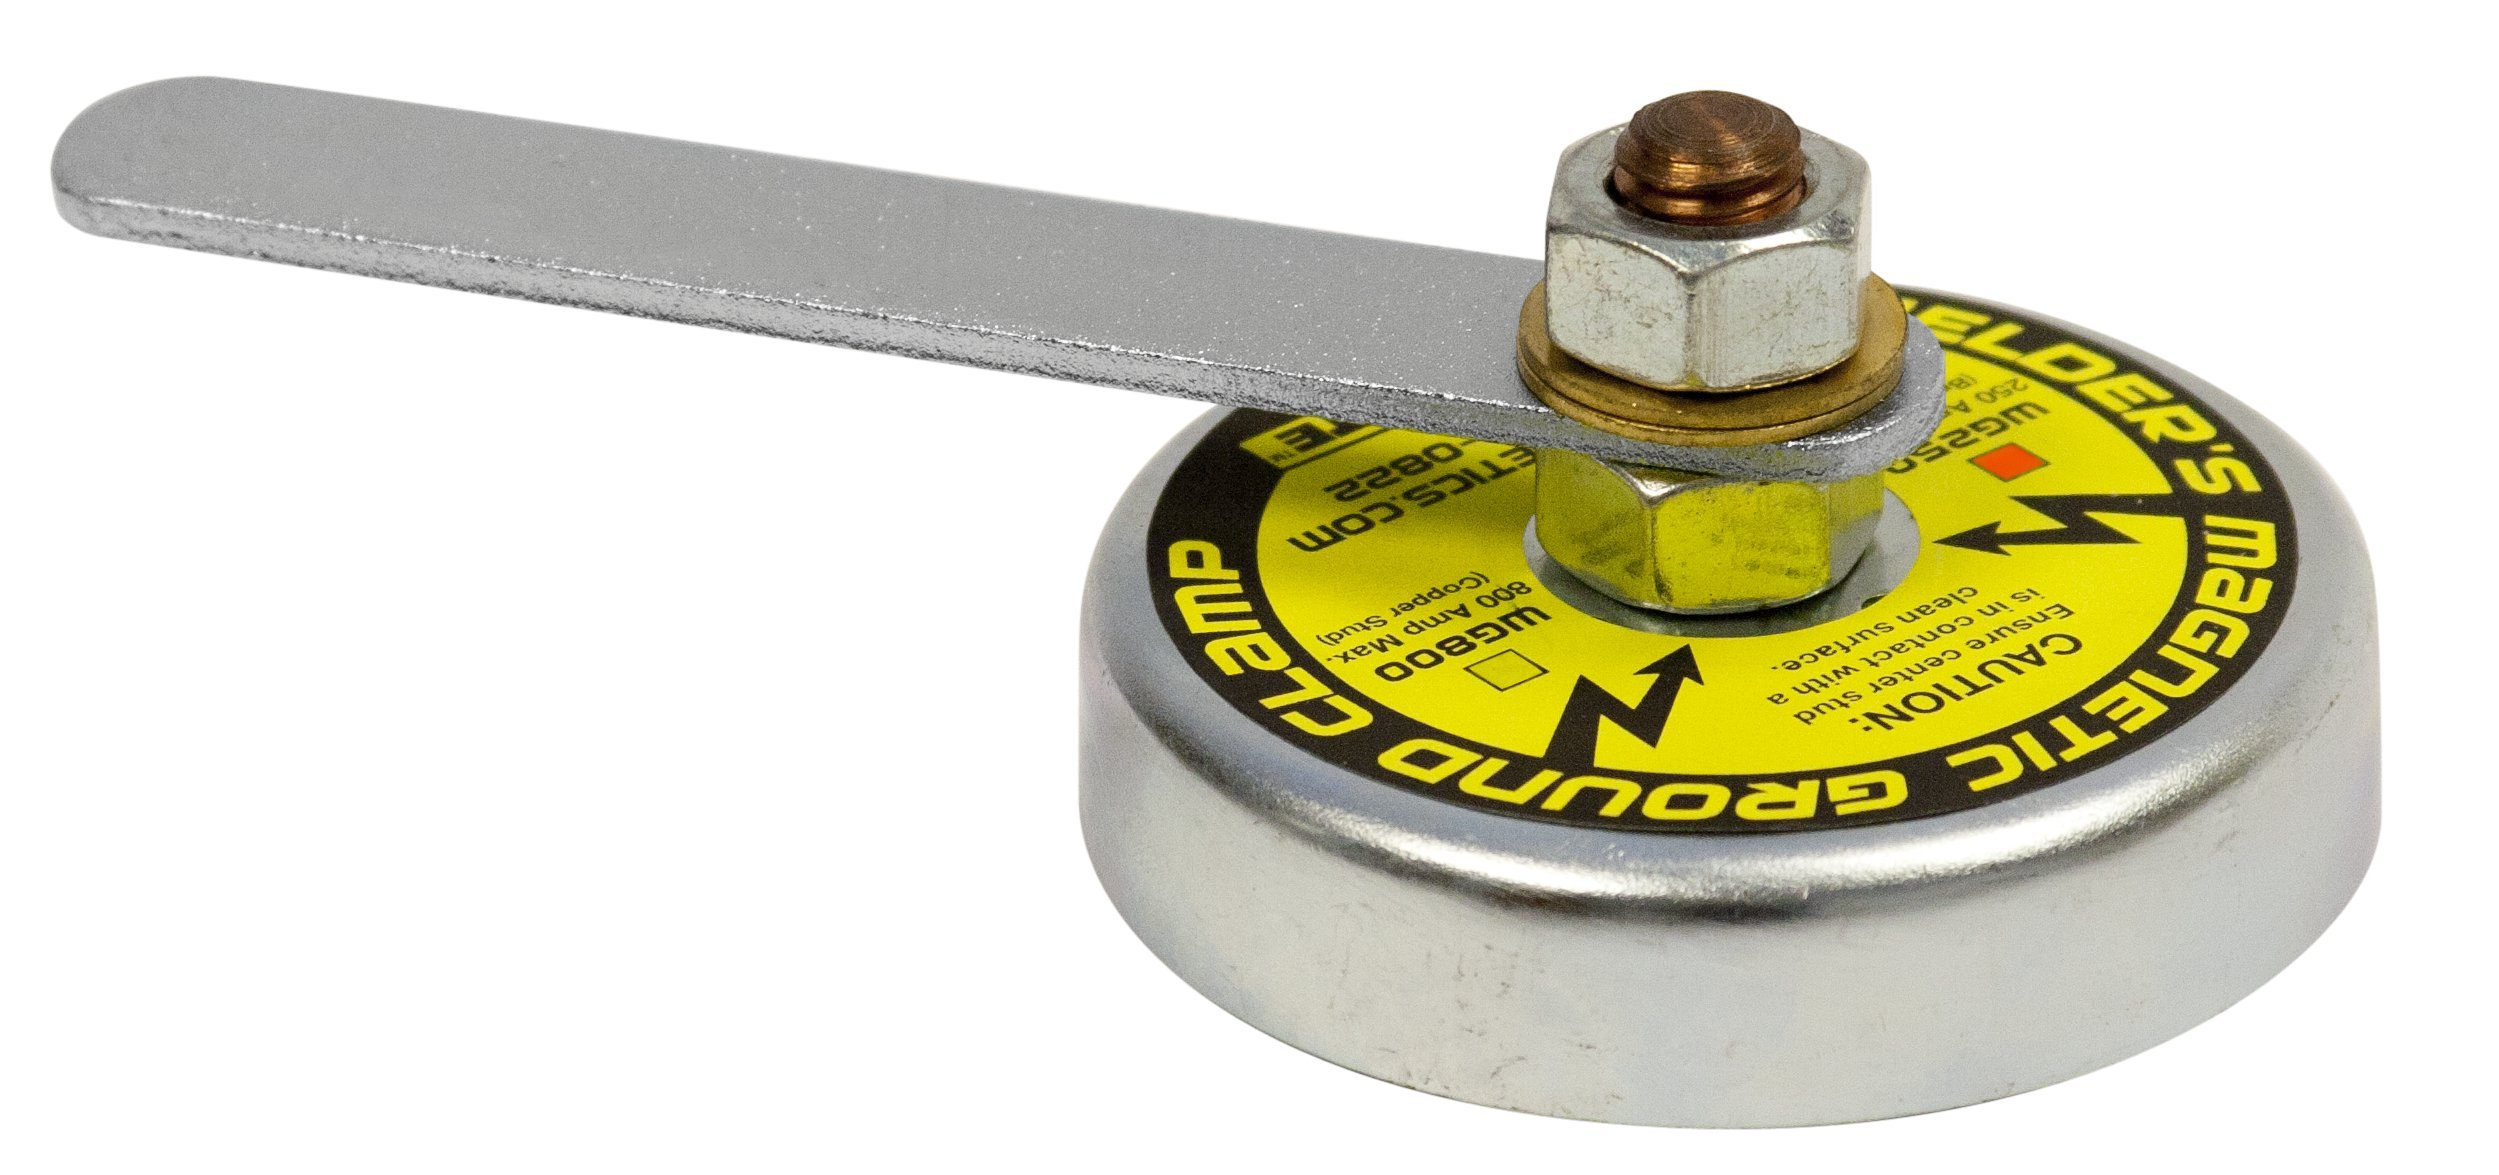 MAG-MATE WG250 Magnetic Welding Ground, 250 Amp by Industrial Magnetics (Image #1)